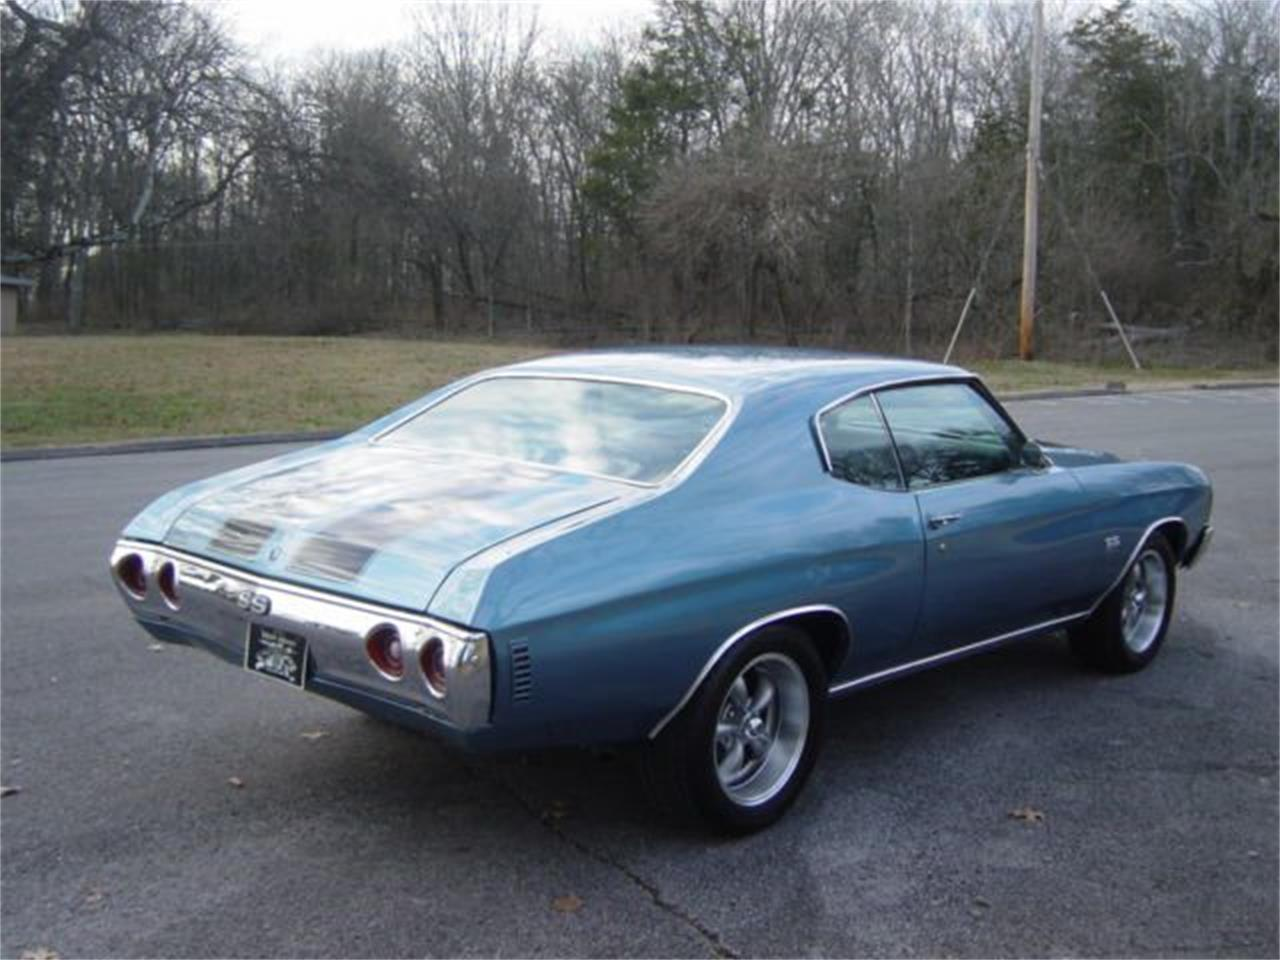 Large Picture of Classic 1972 Chevrolet Chevelle located in Tennessee - $17,900.00 - MNEN